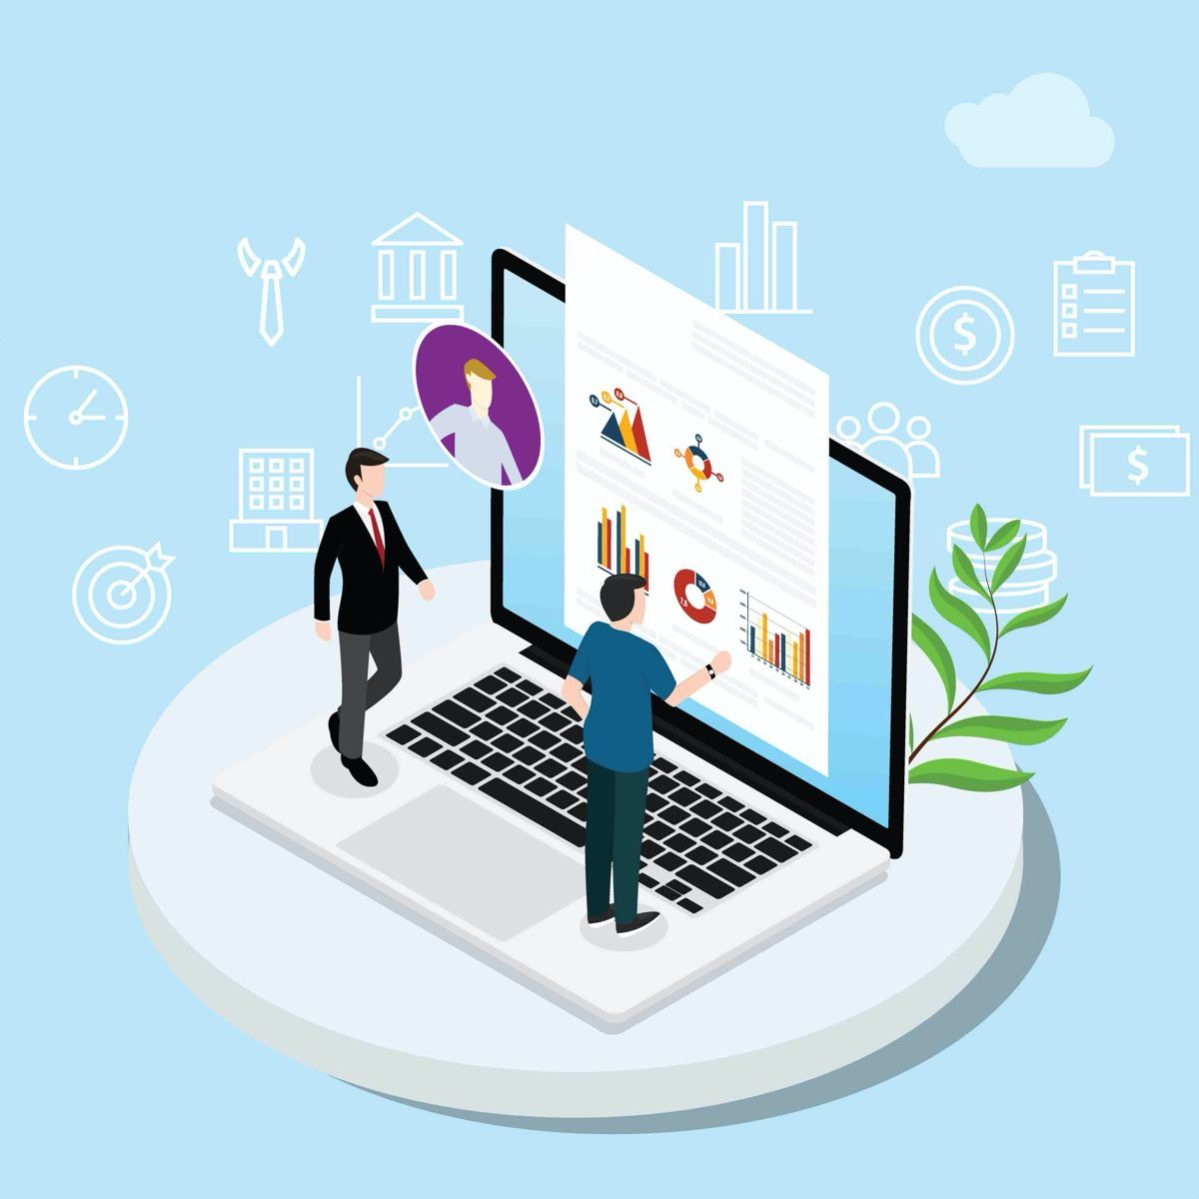 crm services by best crm companies in india